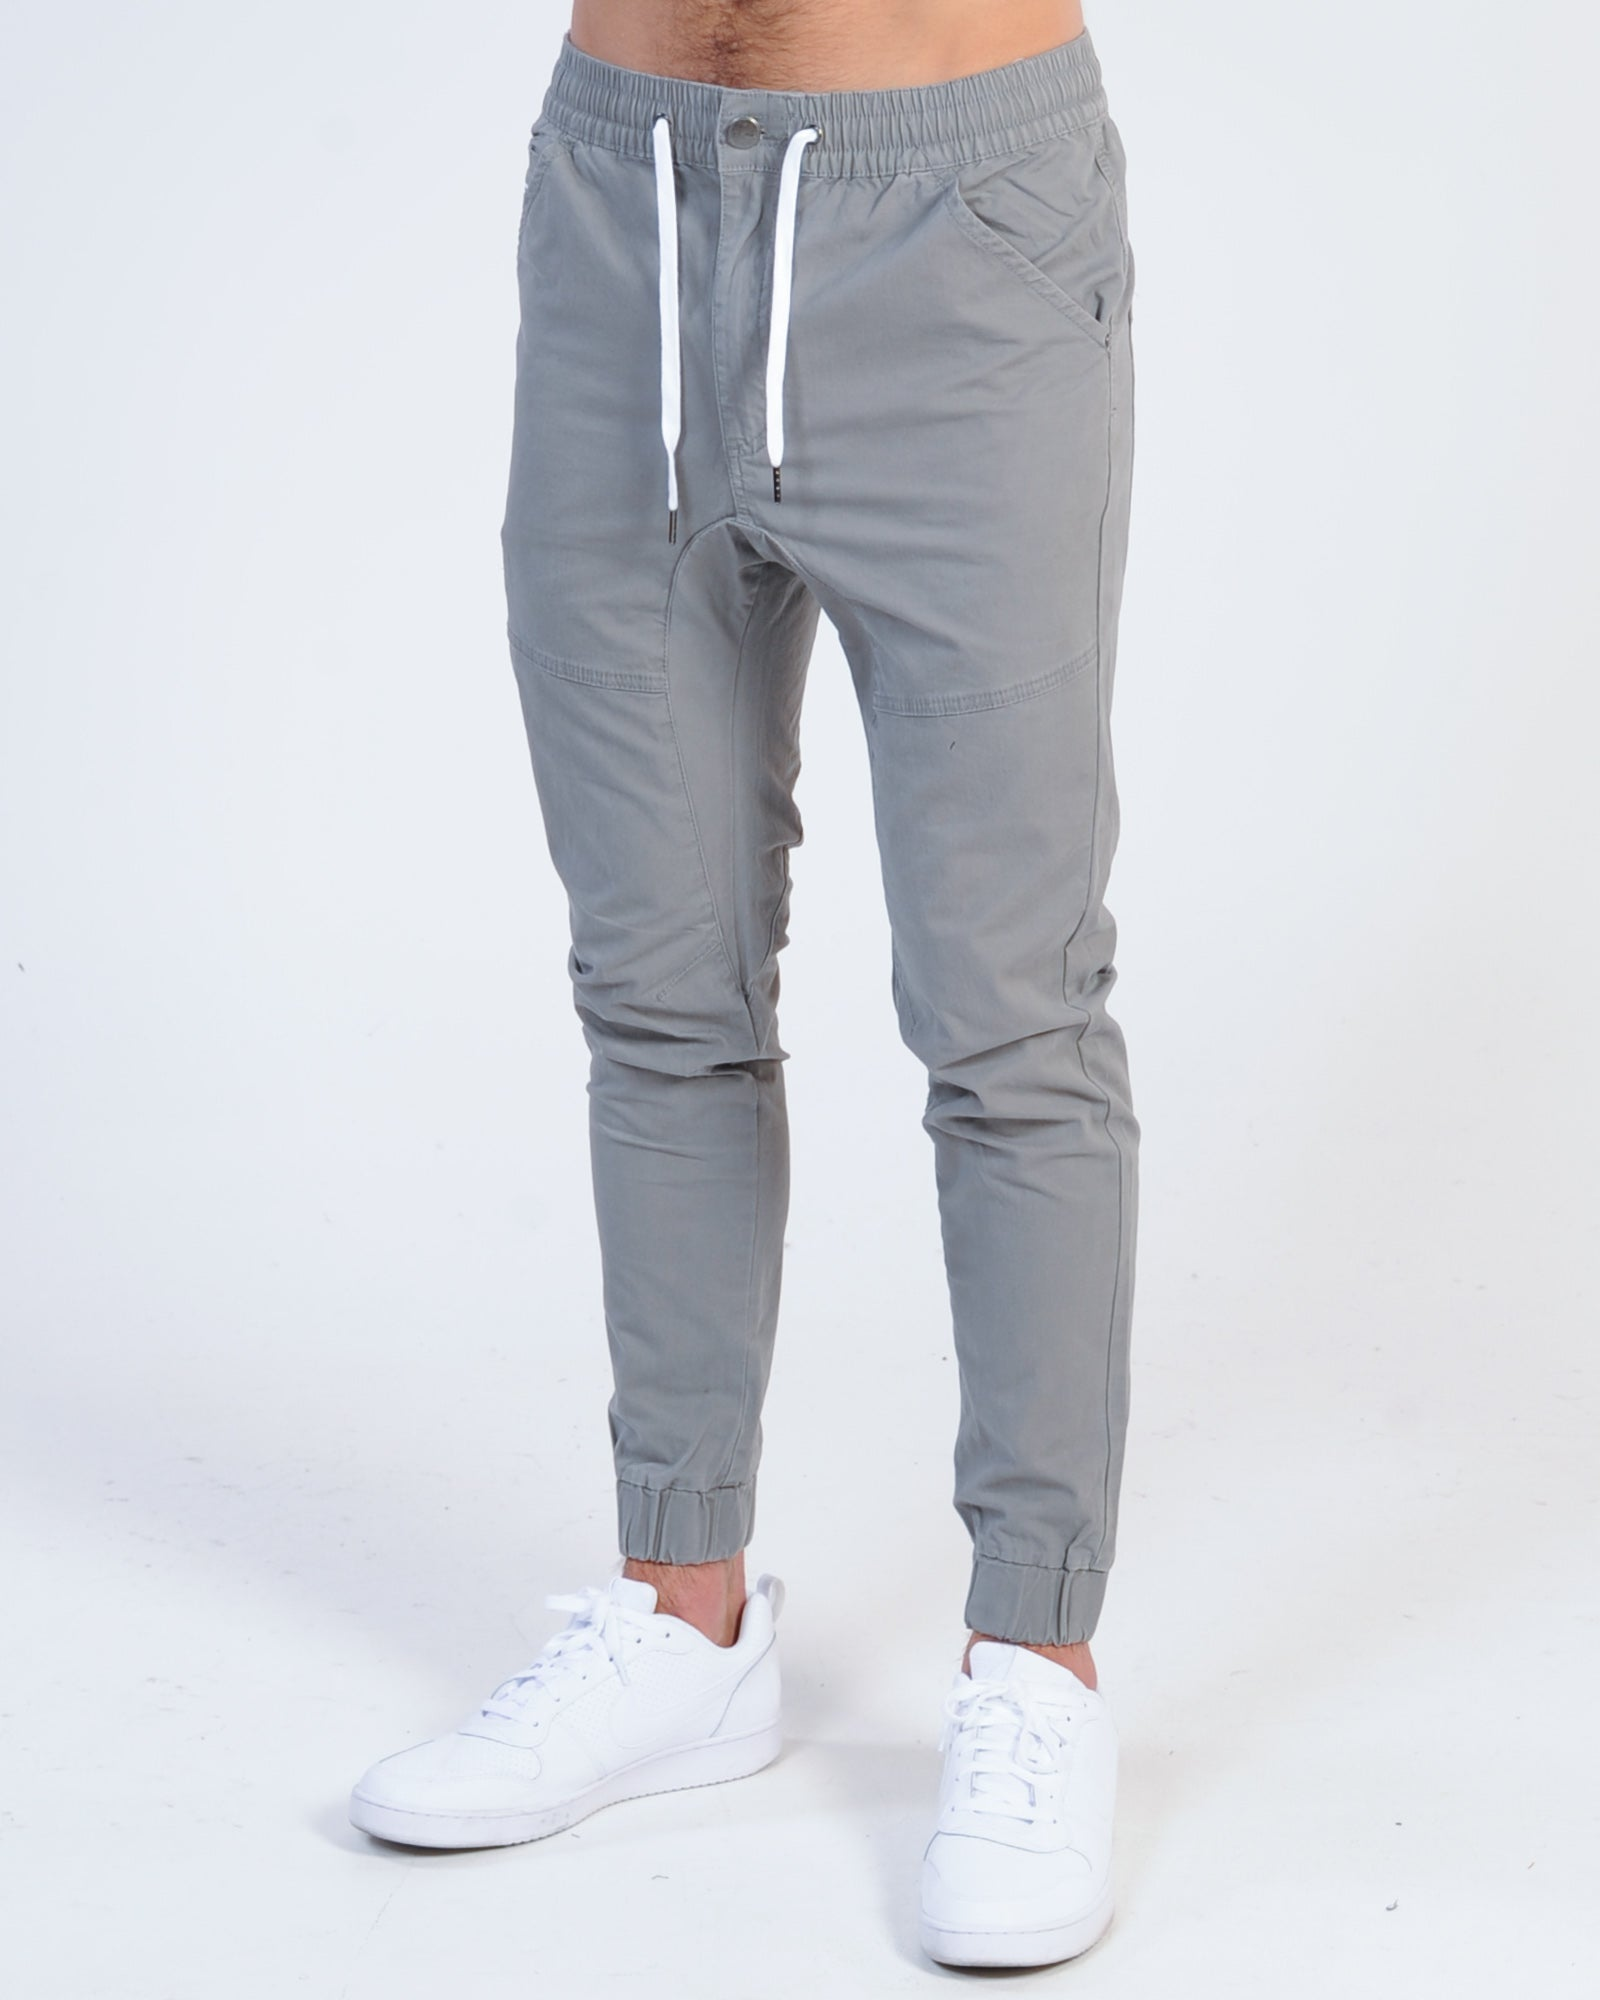 Nena & Pasadena Commander 2.0 Pant - Nickel